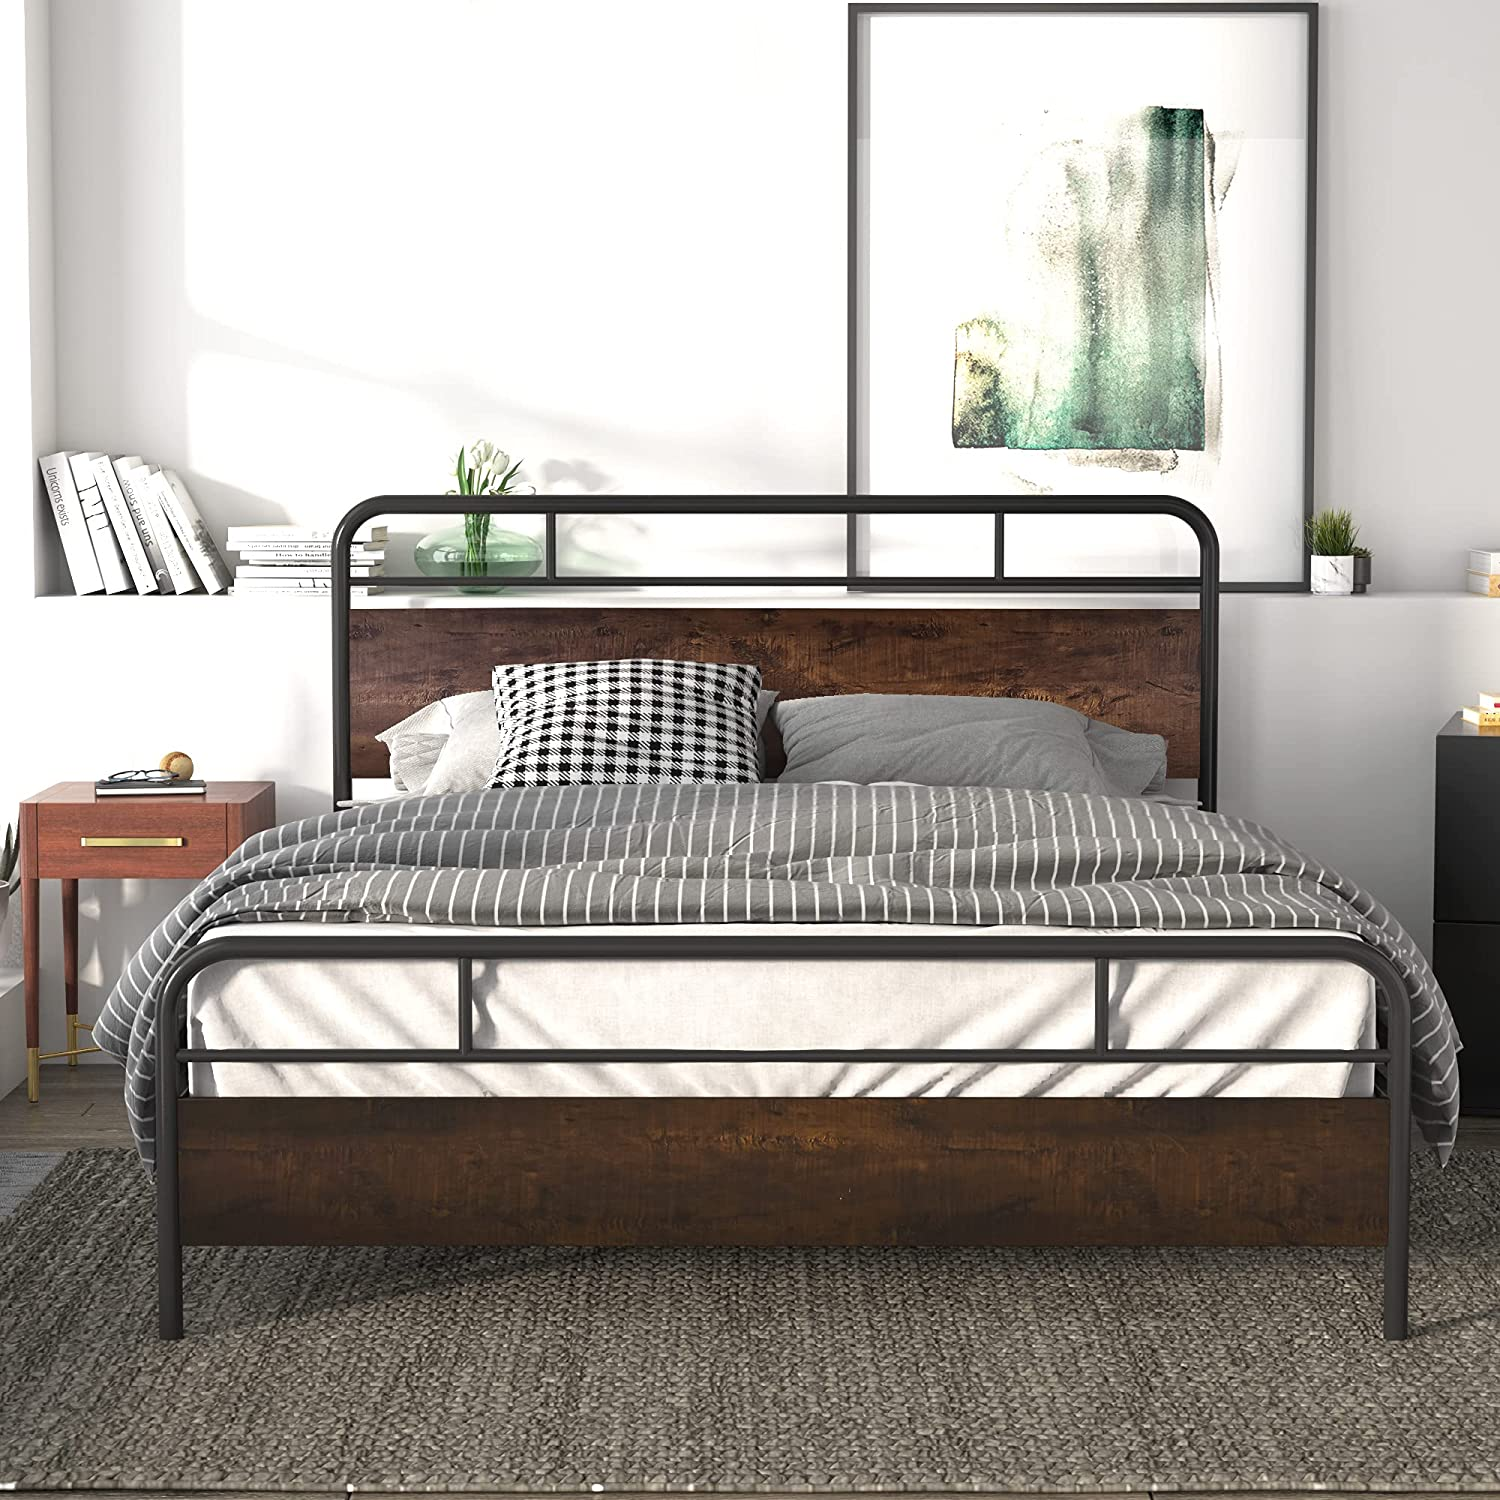 Allewie Matte Bombing Spasm price free shipping Metal Queen Bed with Footboard Headboard Frame